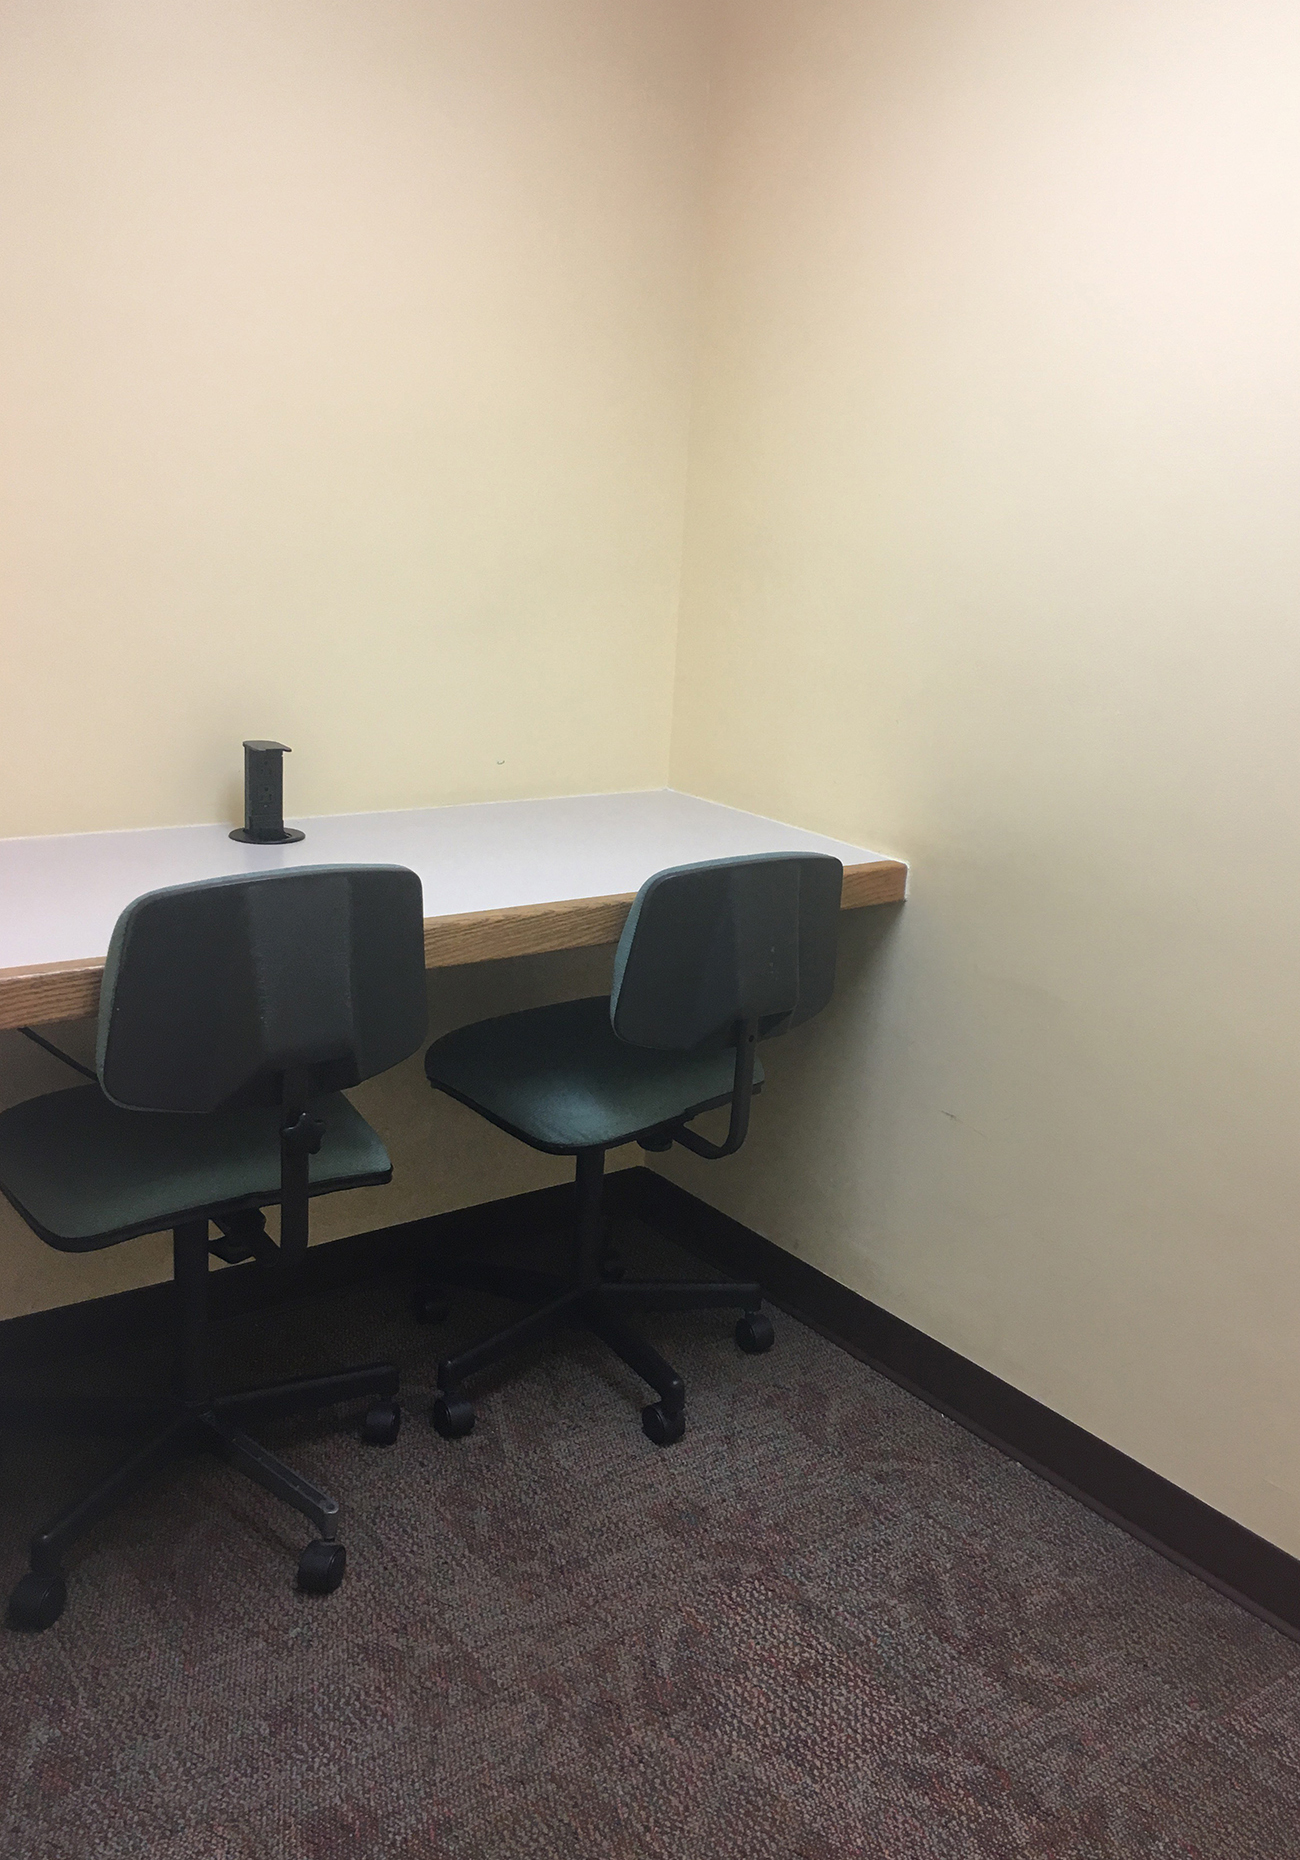 Small study room with two chairs and table